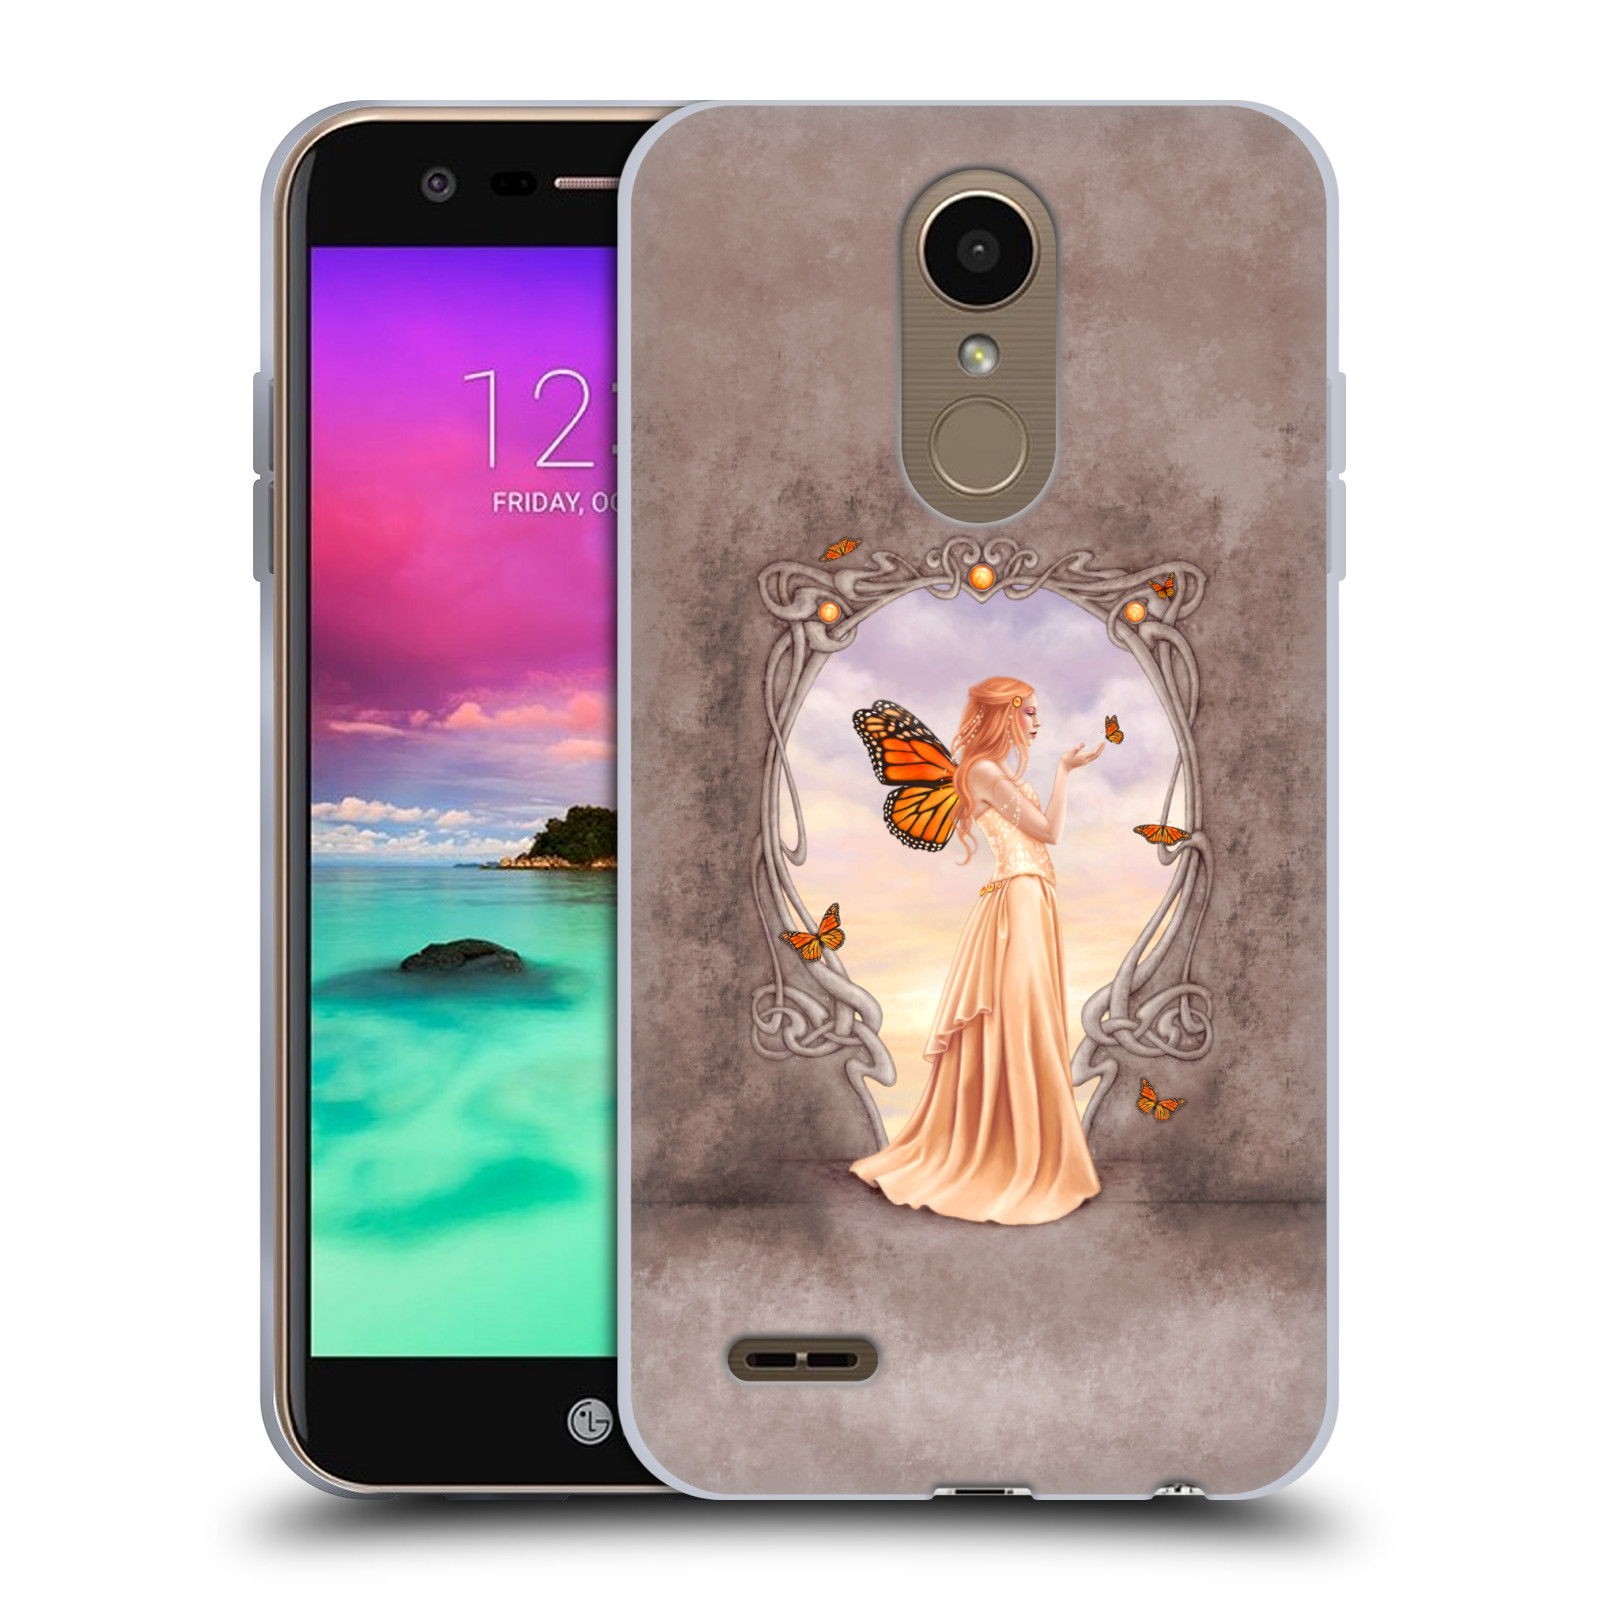 OFFICIAL-RACHEL-ANDERSON-BIRTH-STONE-FAIRIES-SOFT-GEL-CASE-FOR-LG-PHONES-1 thumbnail 10